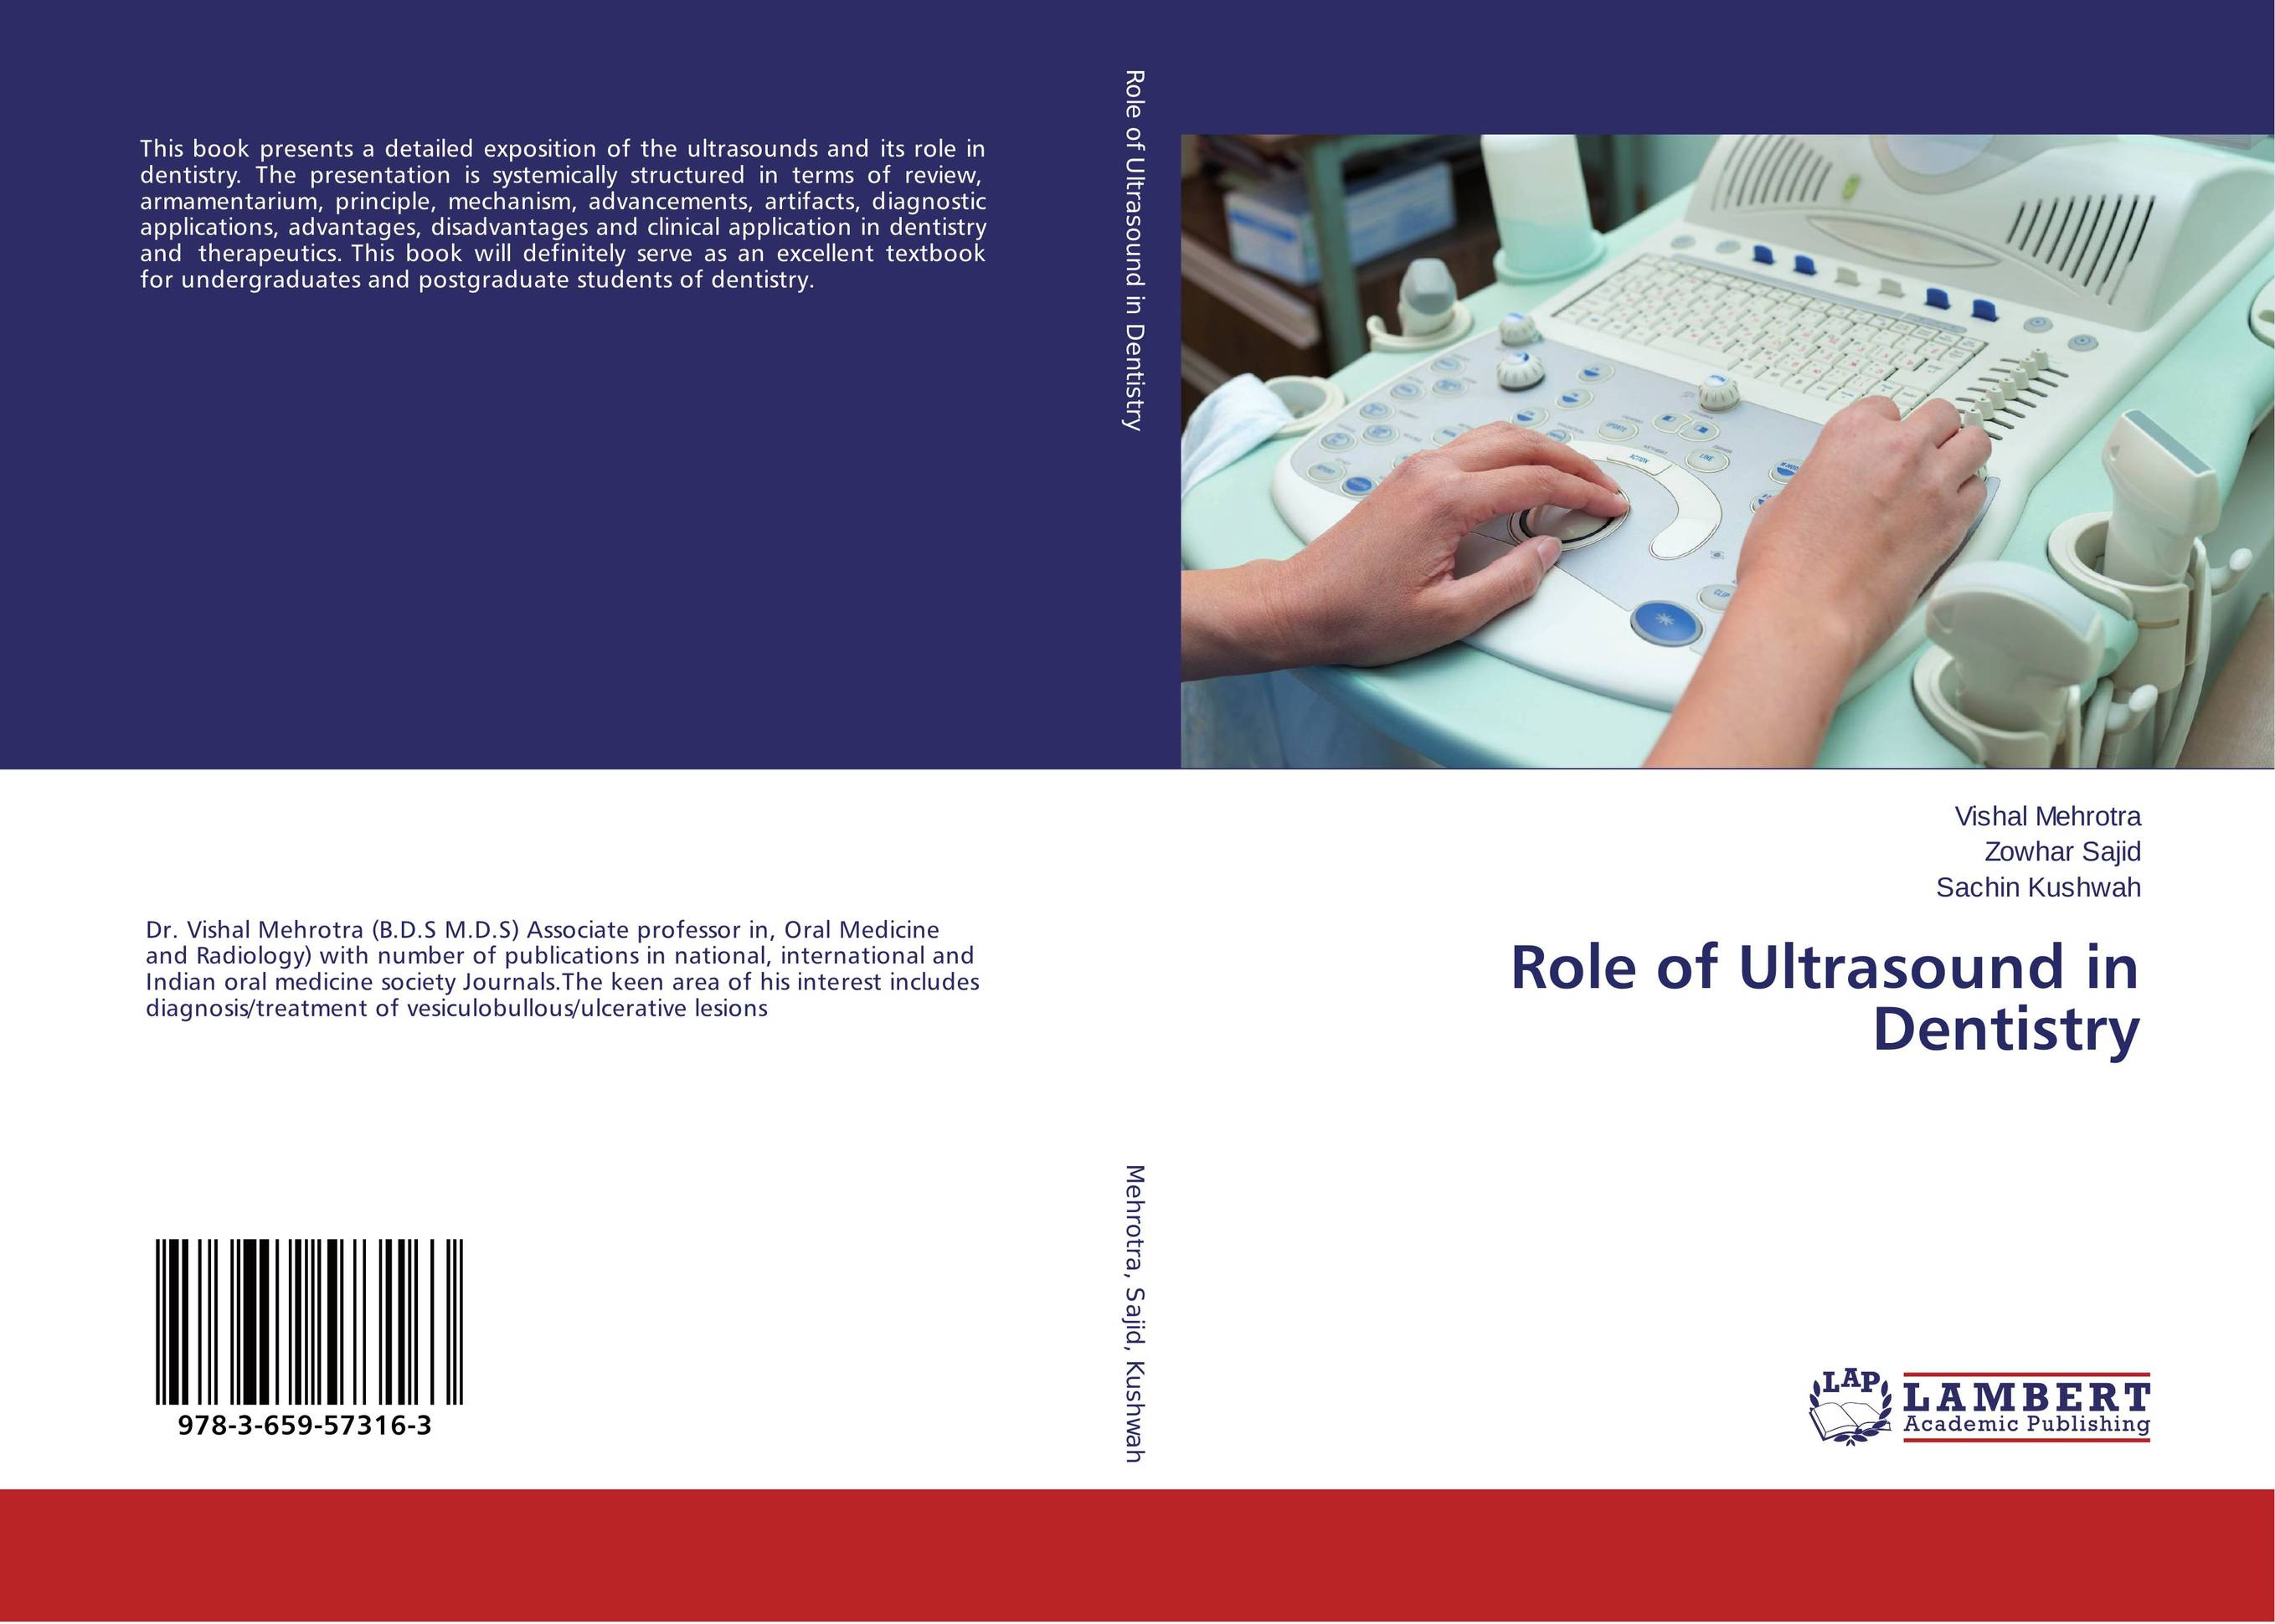 Role of Ultrasound in Dentistry esthetics in implant dentistry